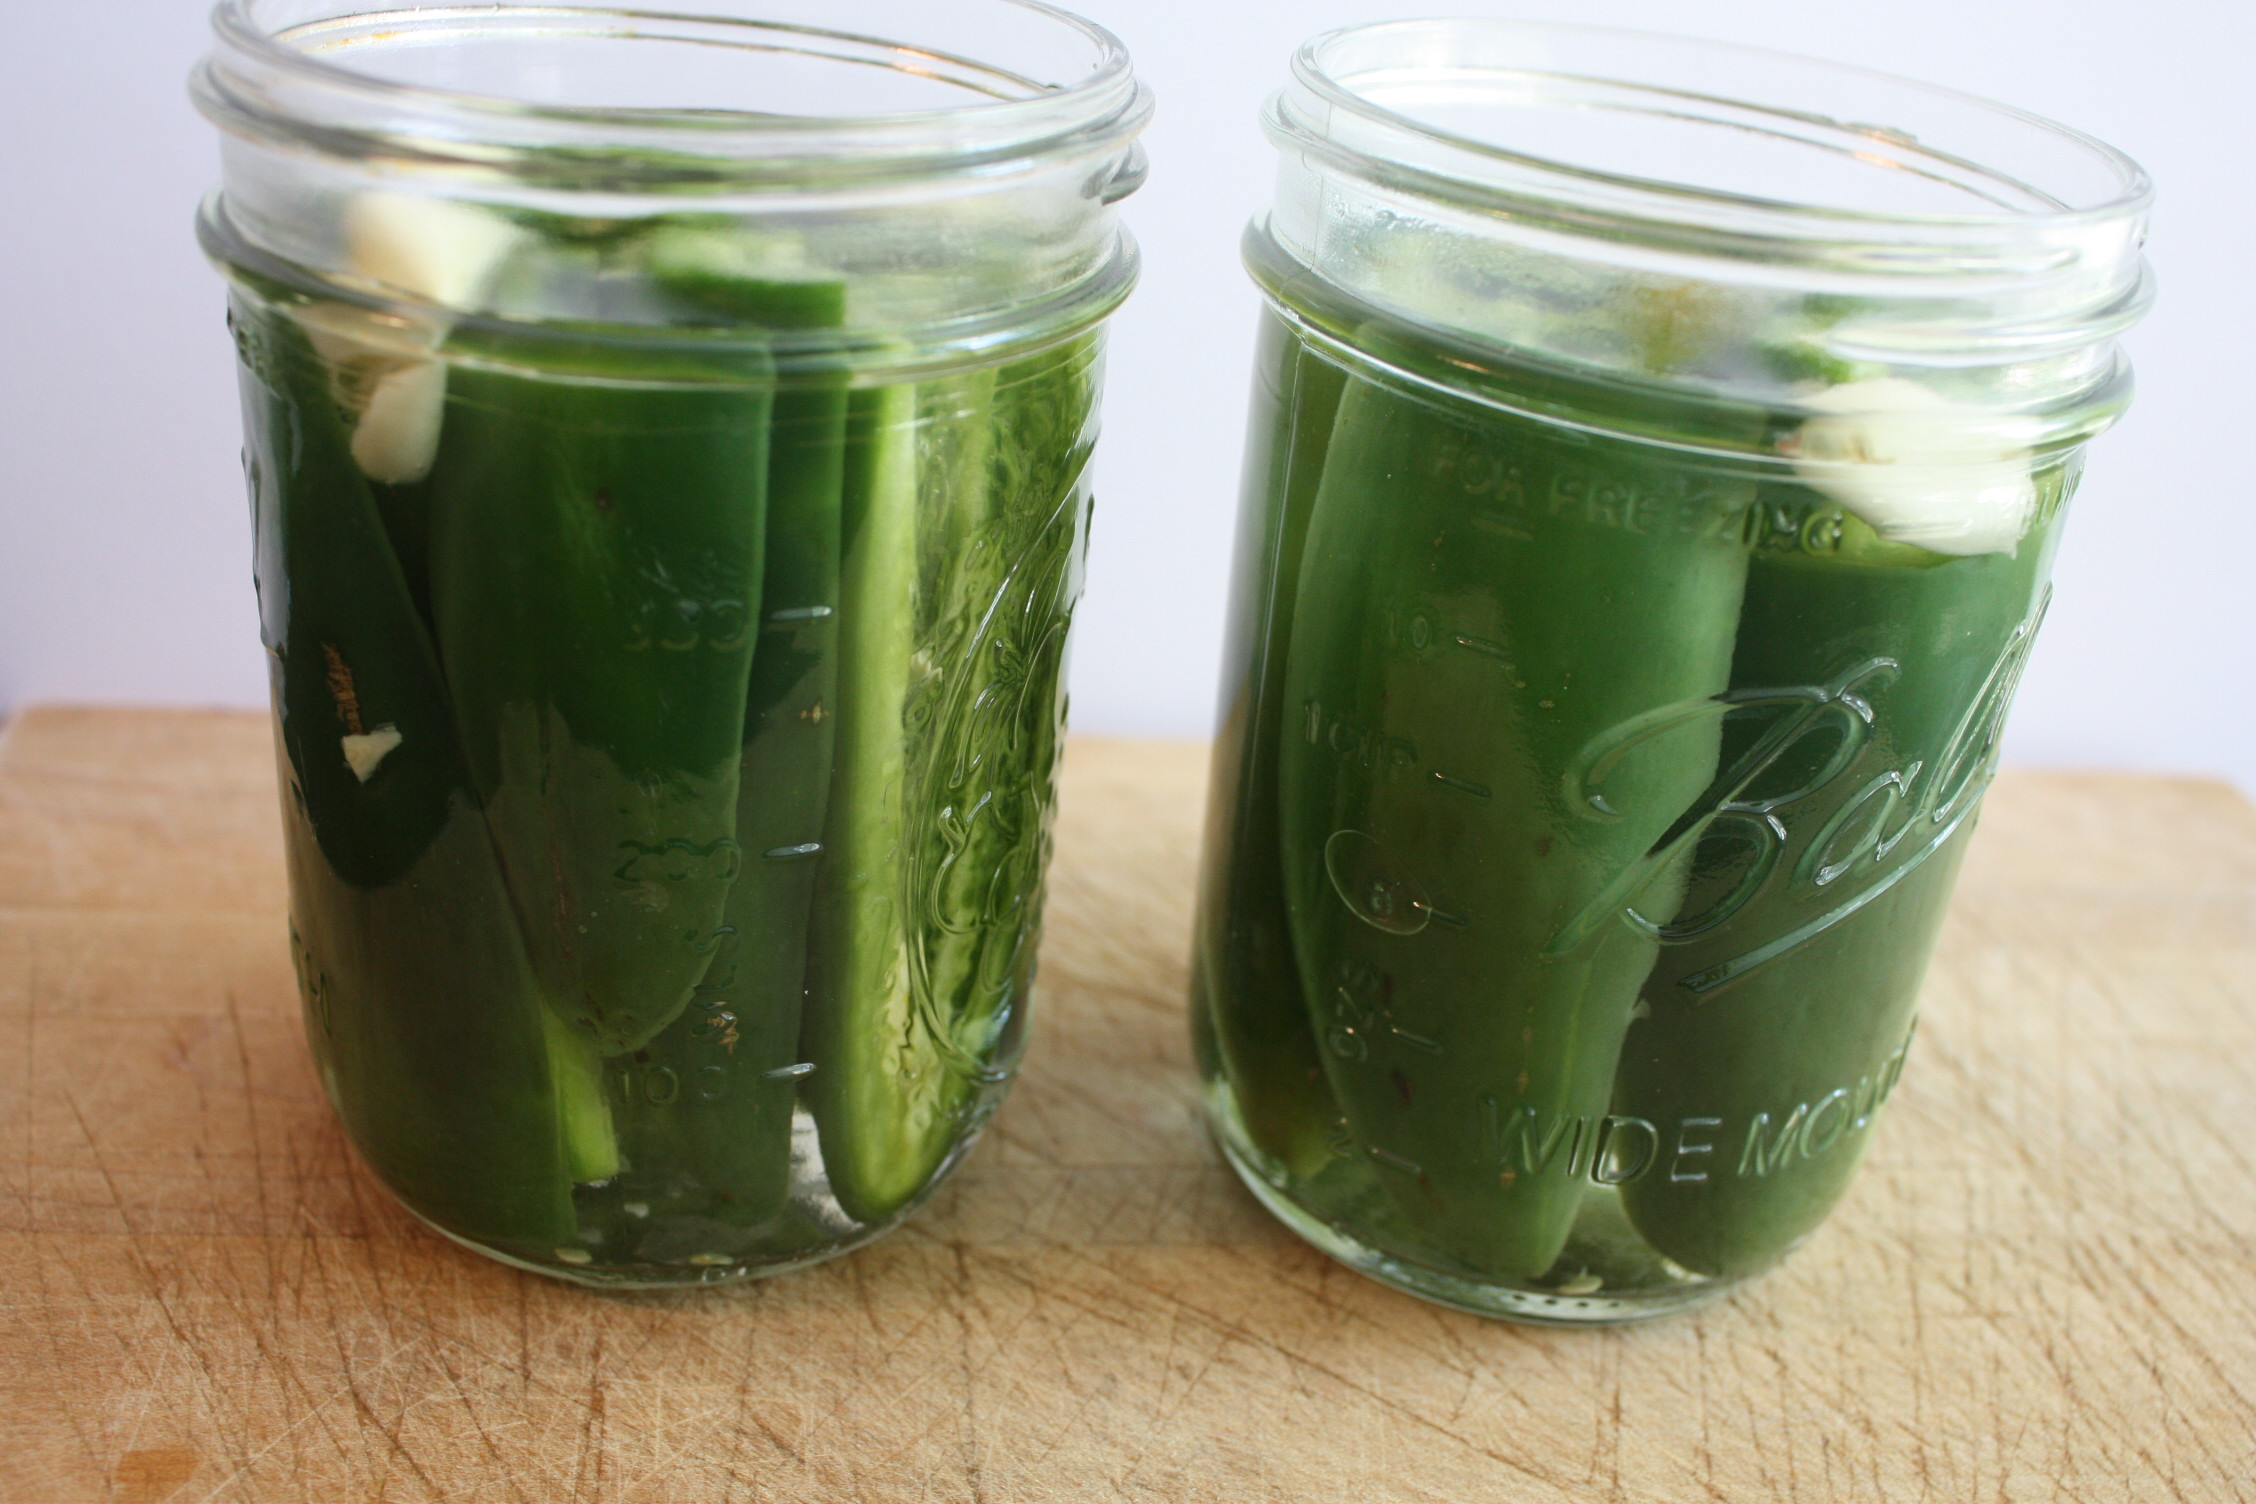 Pickled Jalapeno Peppers - These peppers are nothing like those mushy ...